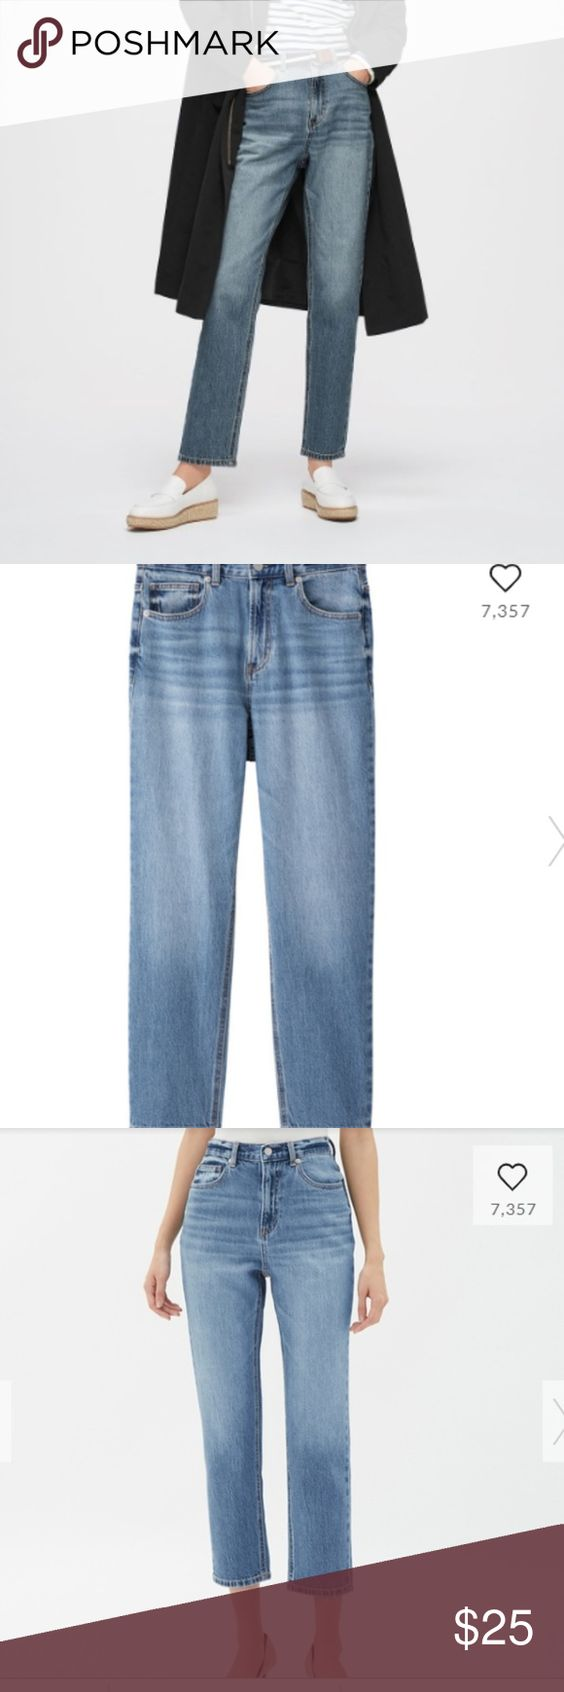 Gu By Uniqlo High Waisted Jeans High Waist Jeans Uniqlo Jeans Jeans